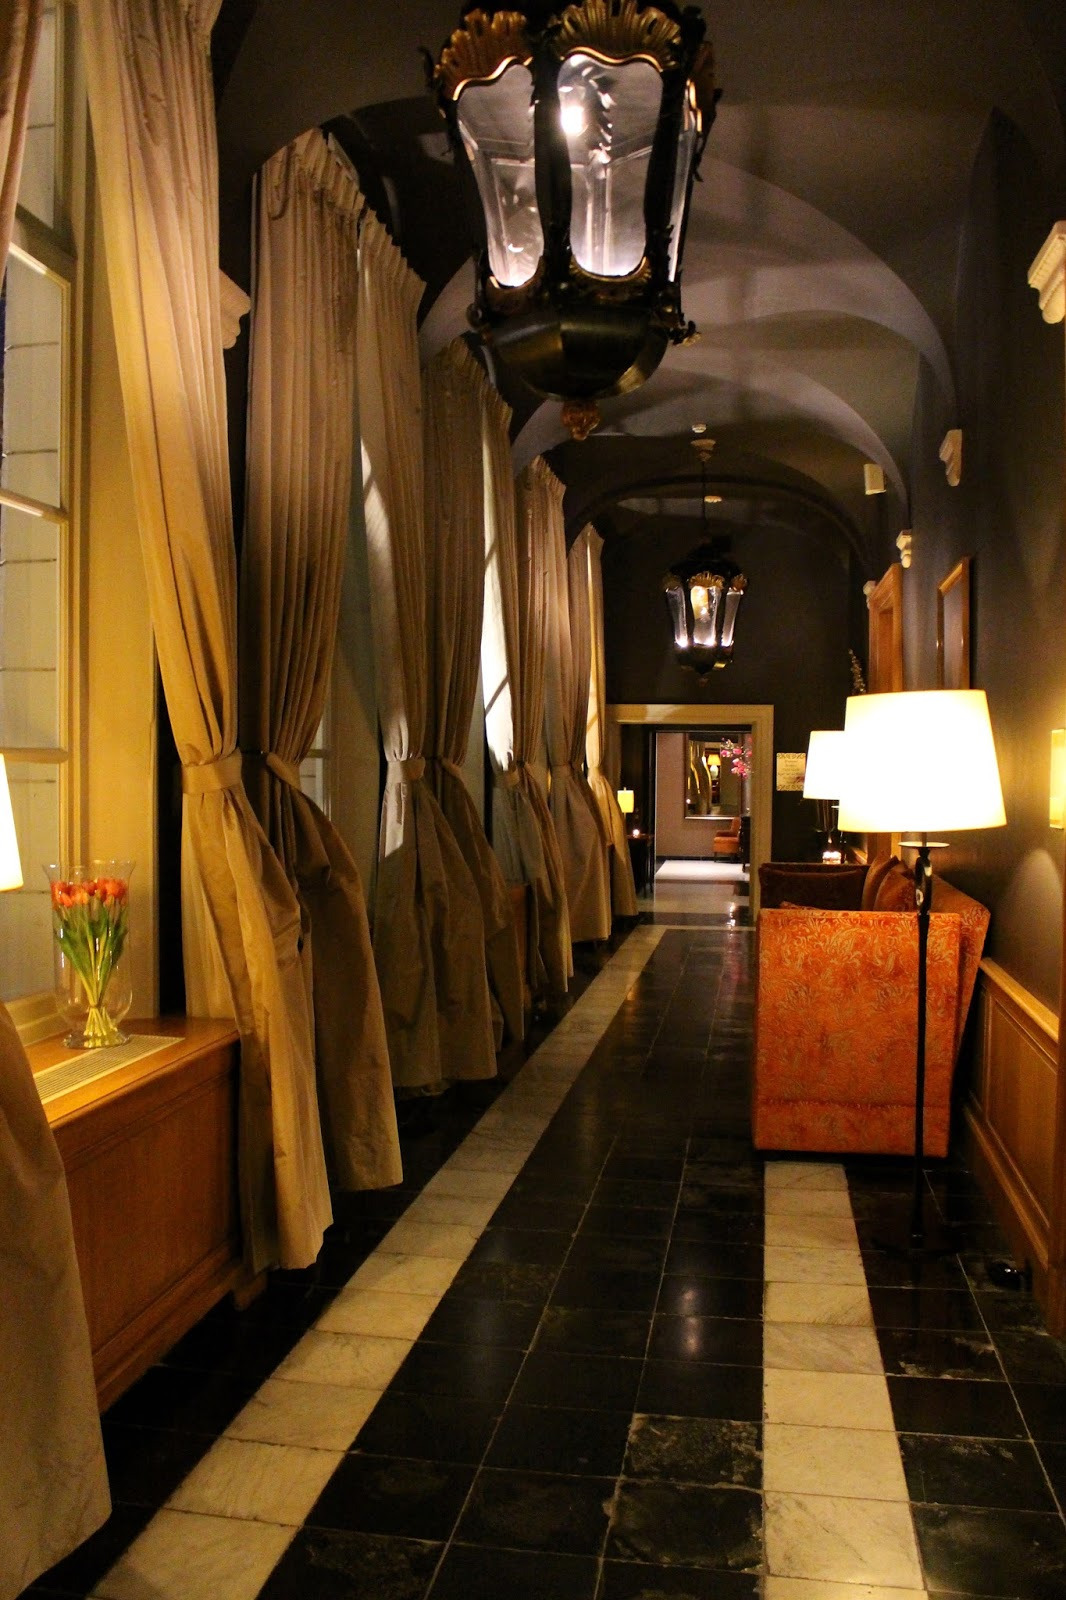 Beautiful hotel dukes' palace corridors by night